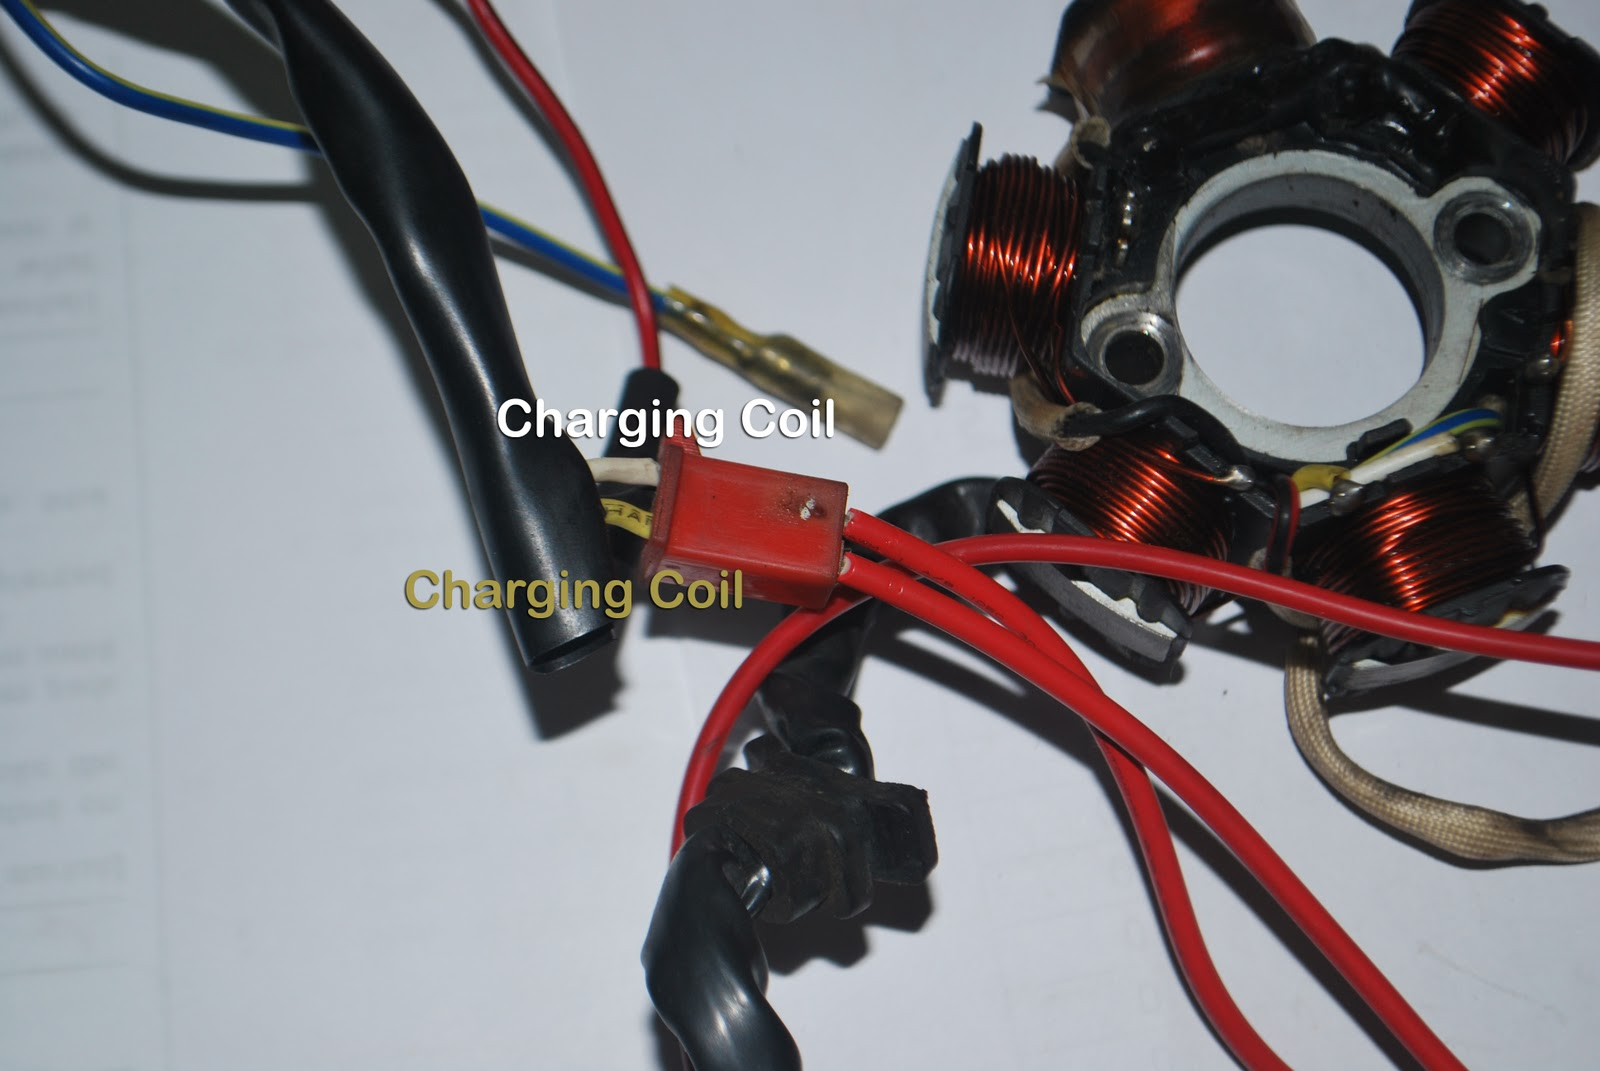 DIY: Fix On Your Own: How to check GY6 Scooter Stator Coil